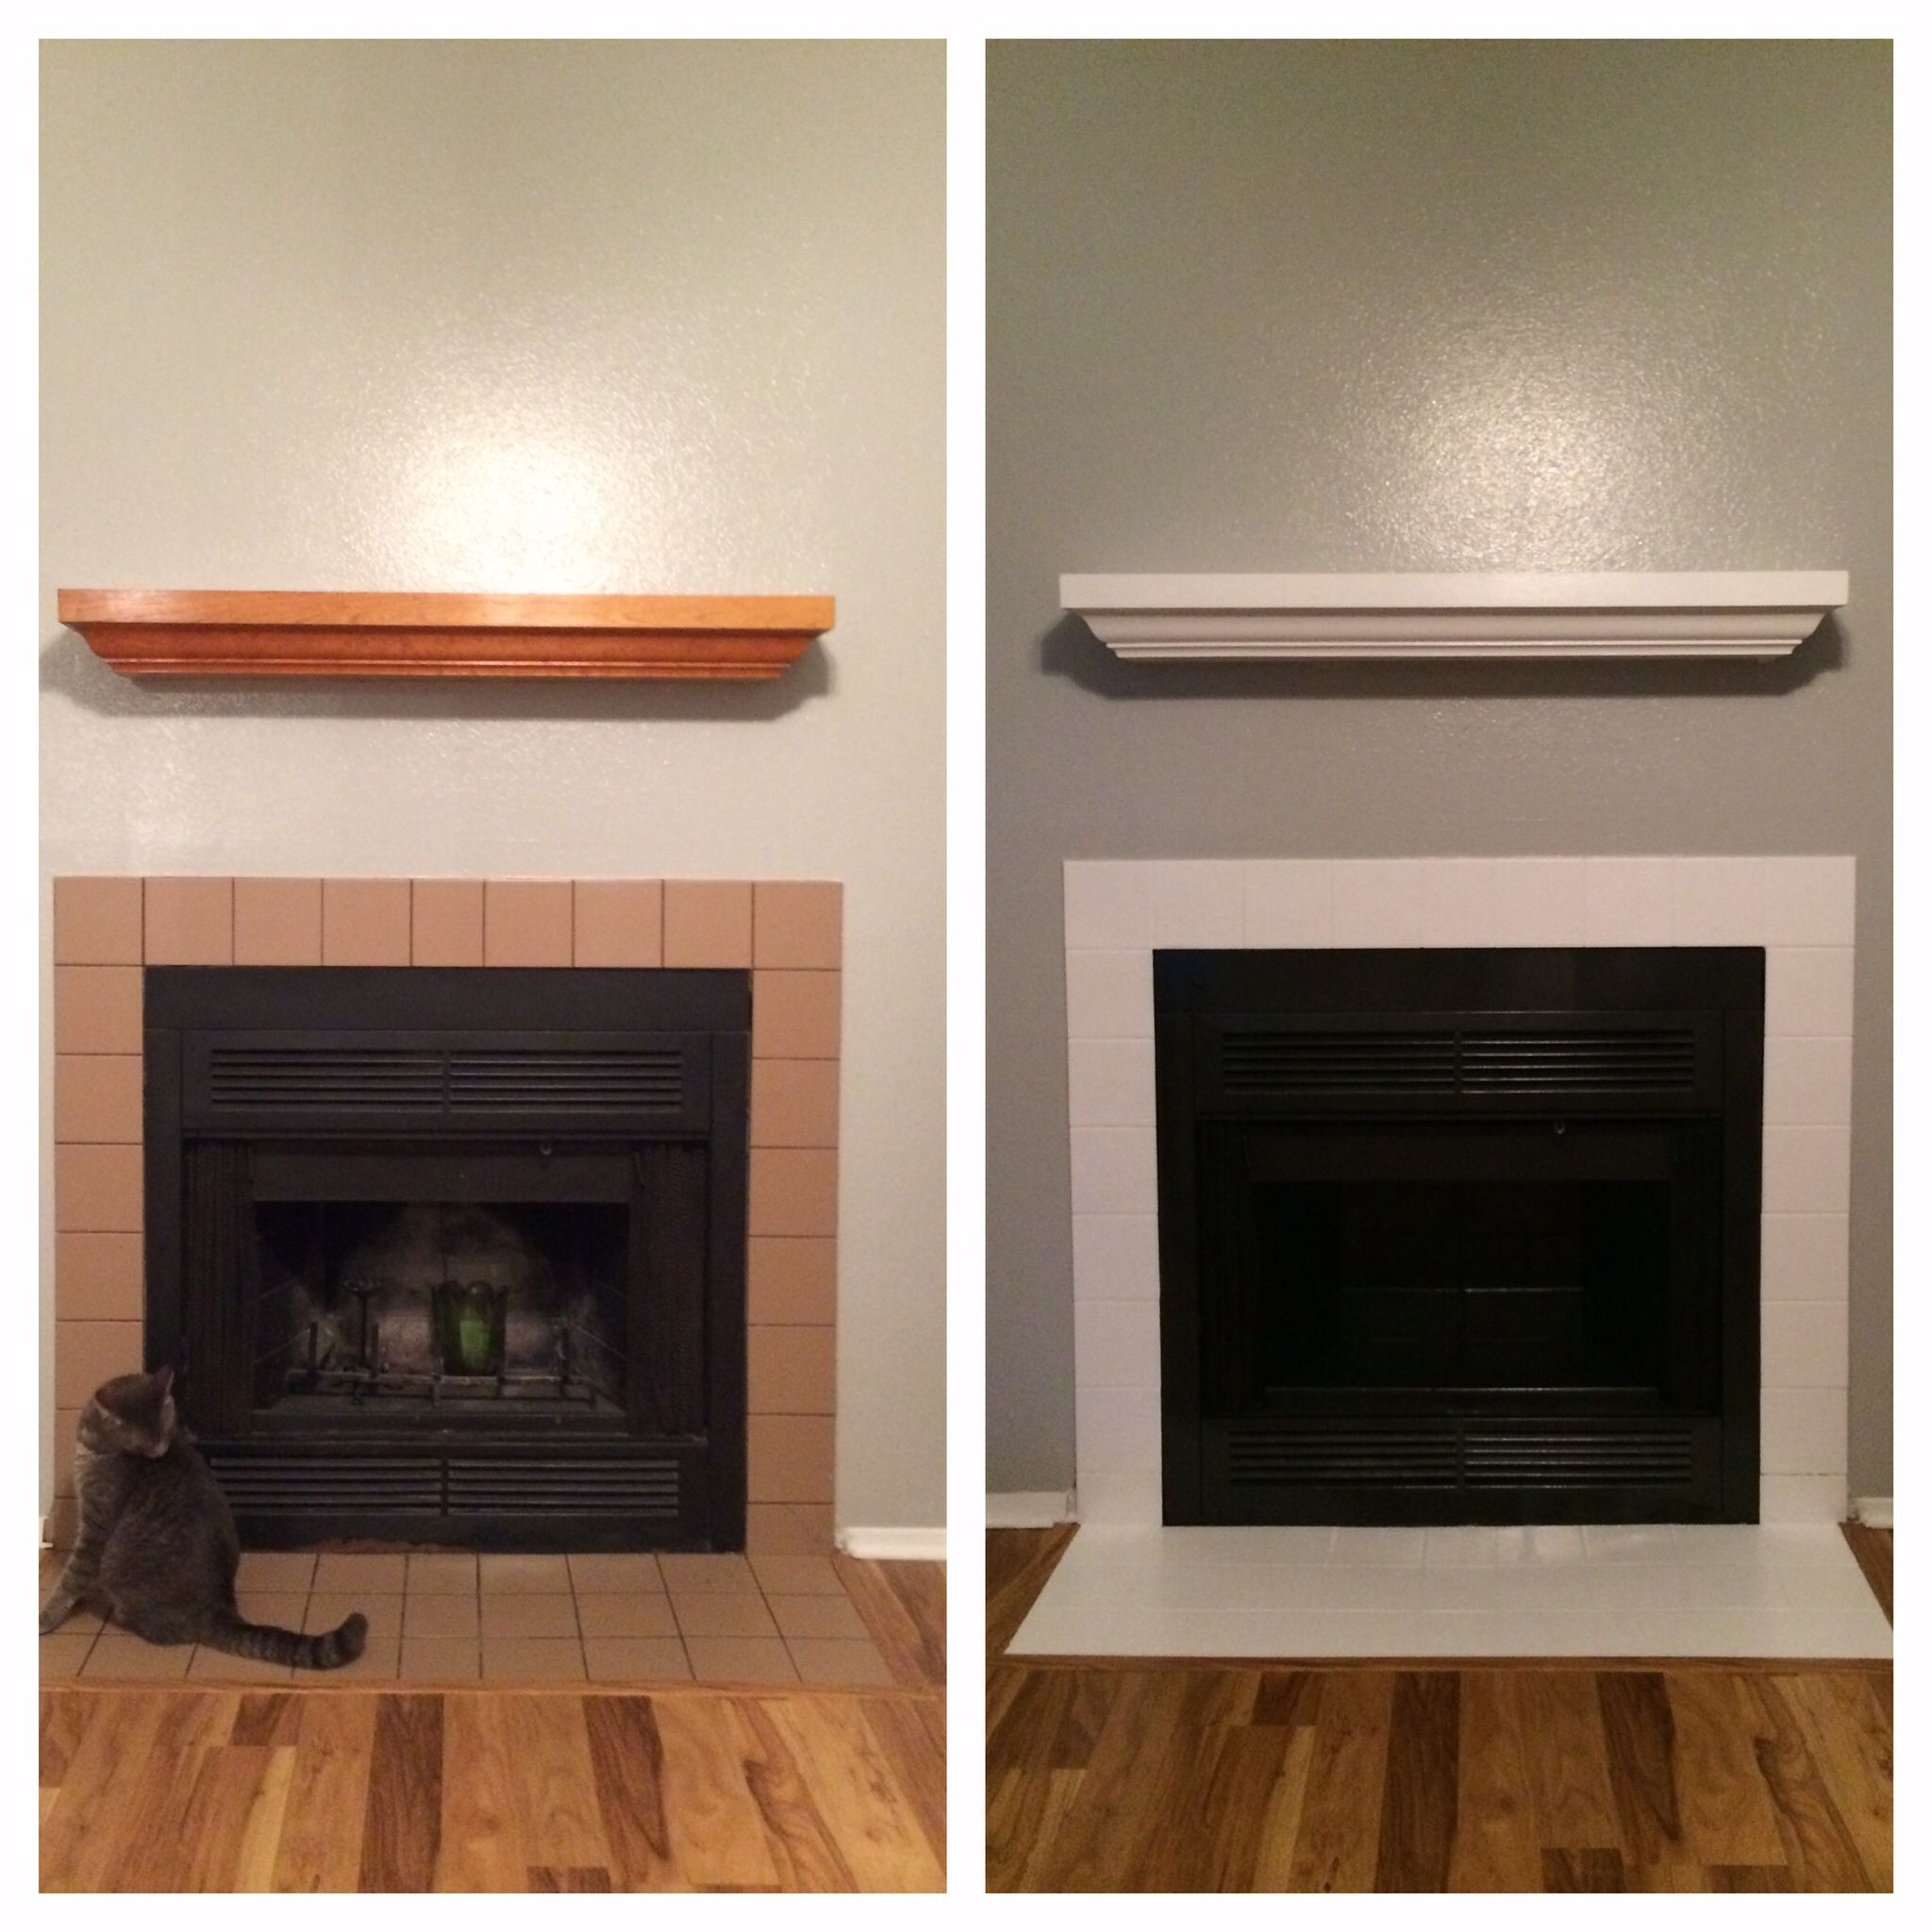 DIY tile fireplace update. Spray painted the fireplace black using rustoleum black spray paint and primer. Then I Painted the tile around the fireplace using an oil based primer